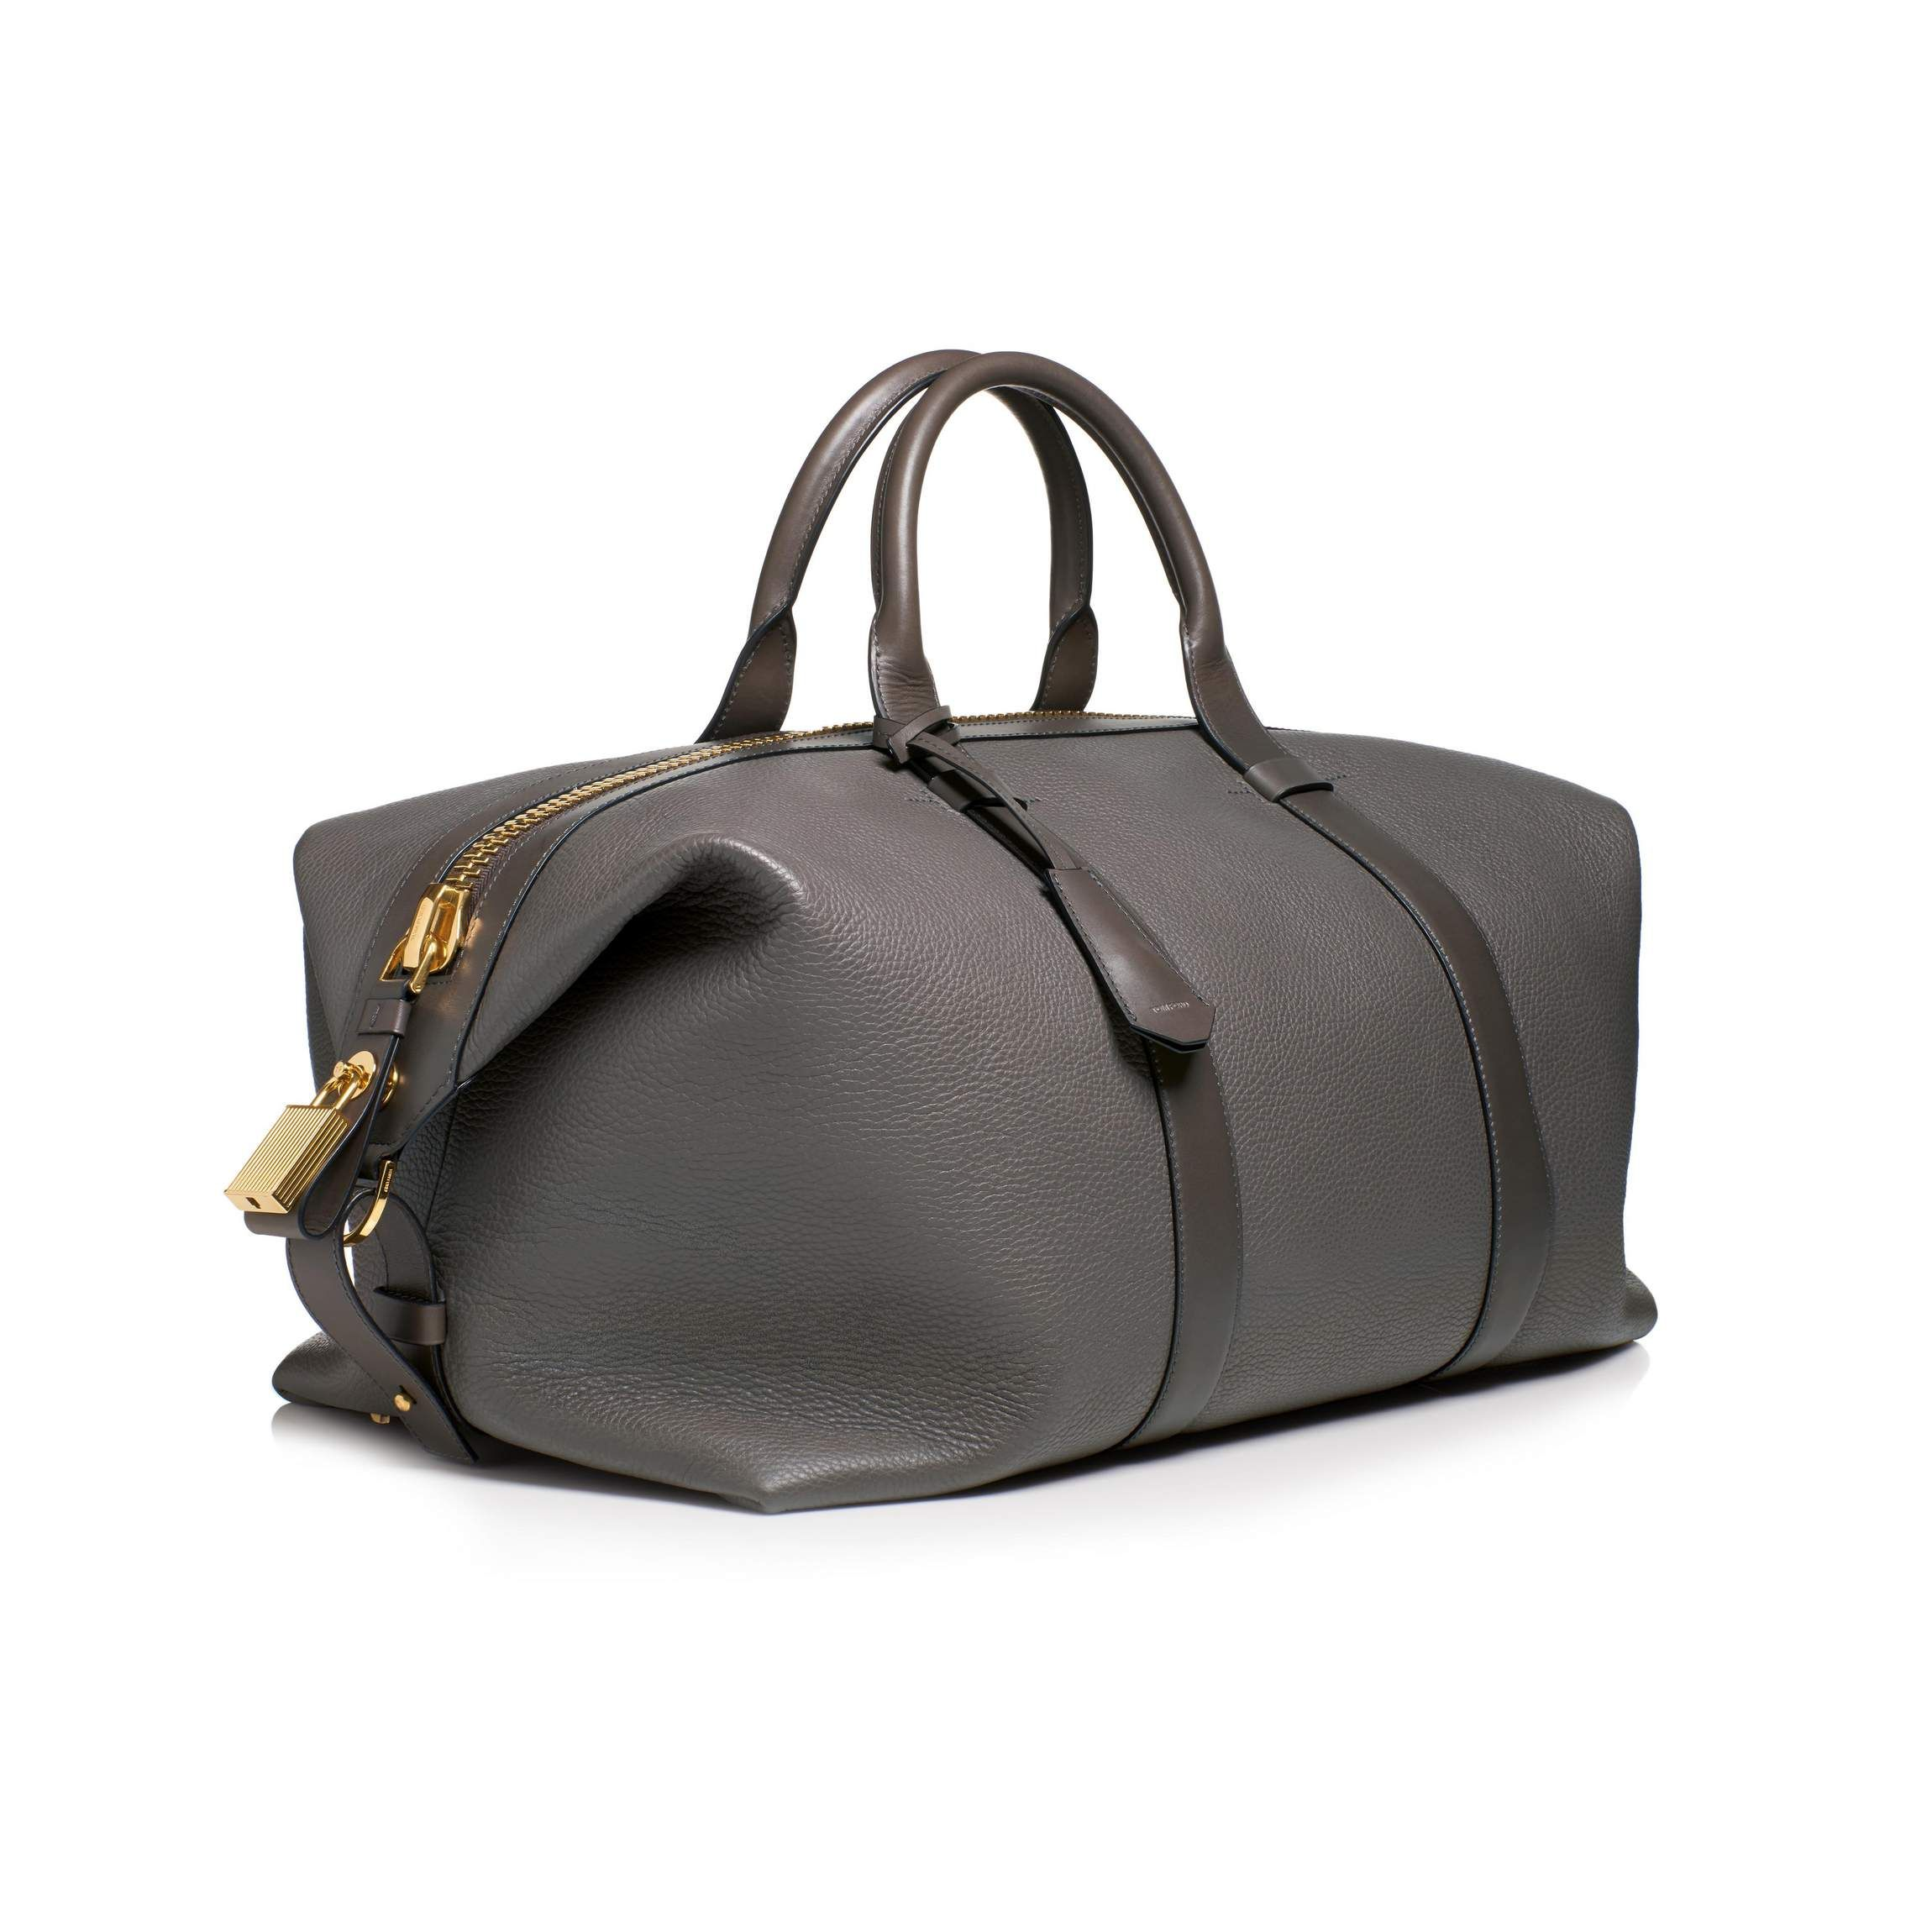 8cc70e858dfe BUCKLEY LARGE DUFFLE BAG - Tom Ford | Bags & Leather Goods | Bags ...